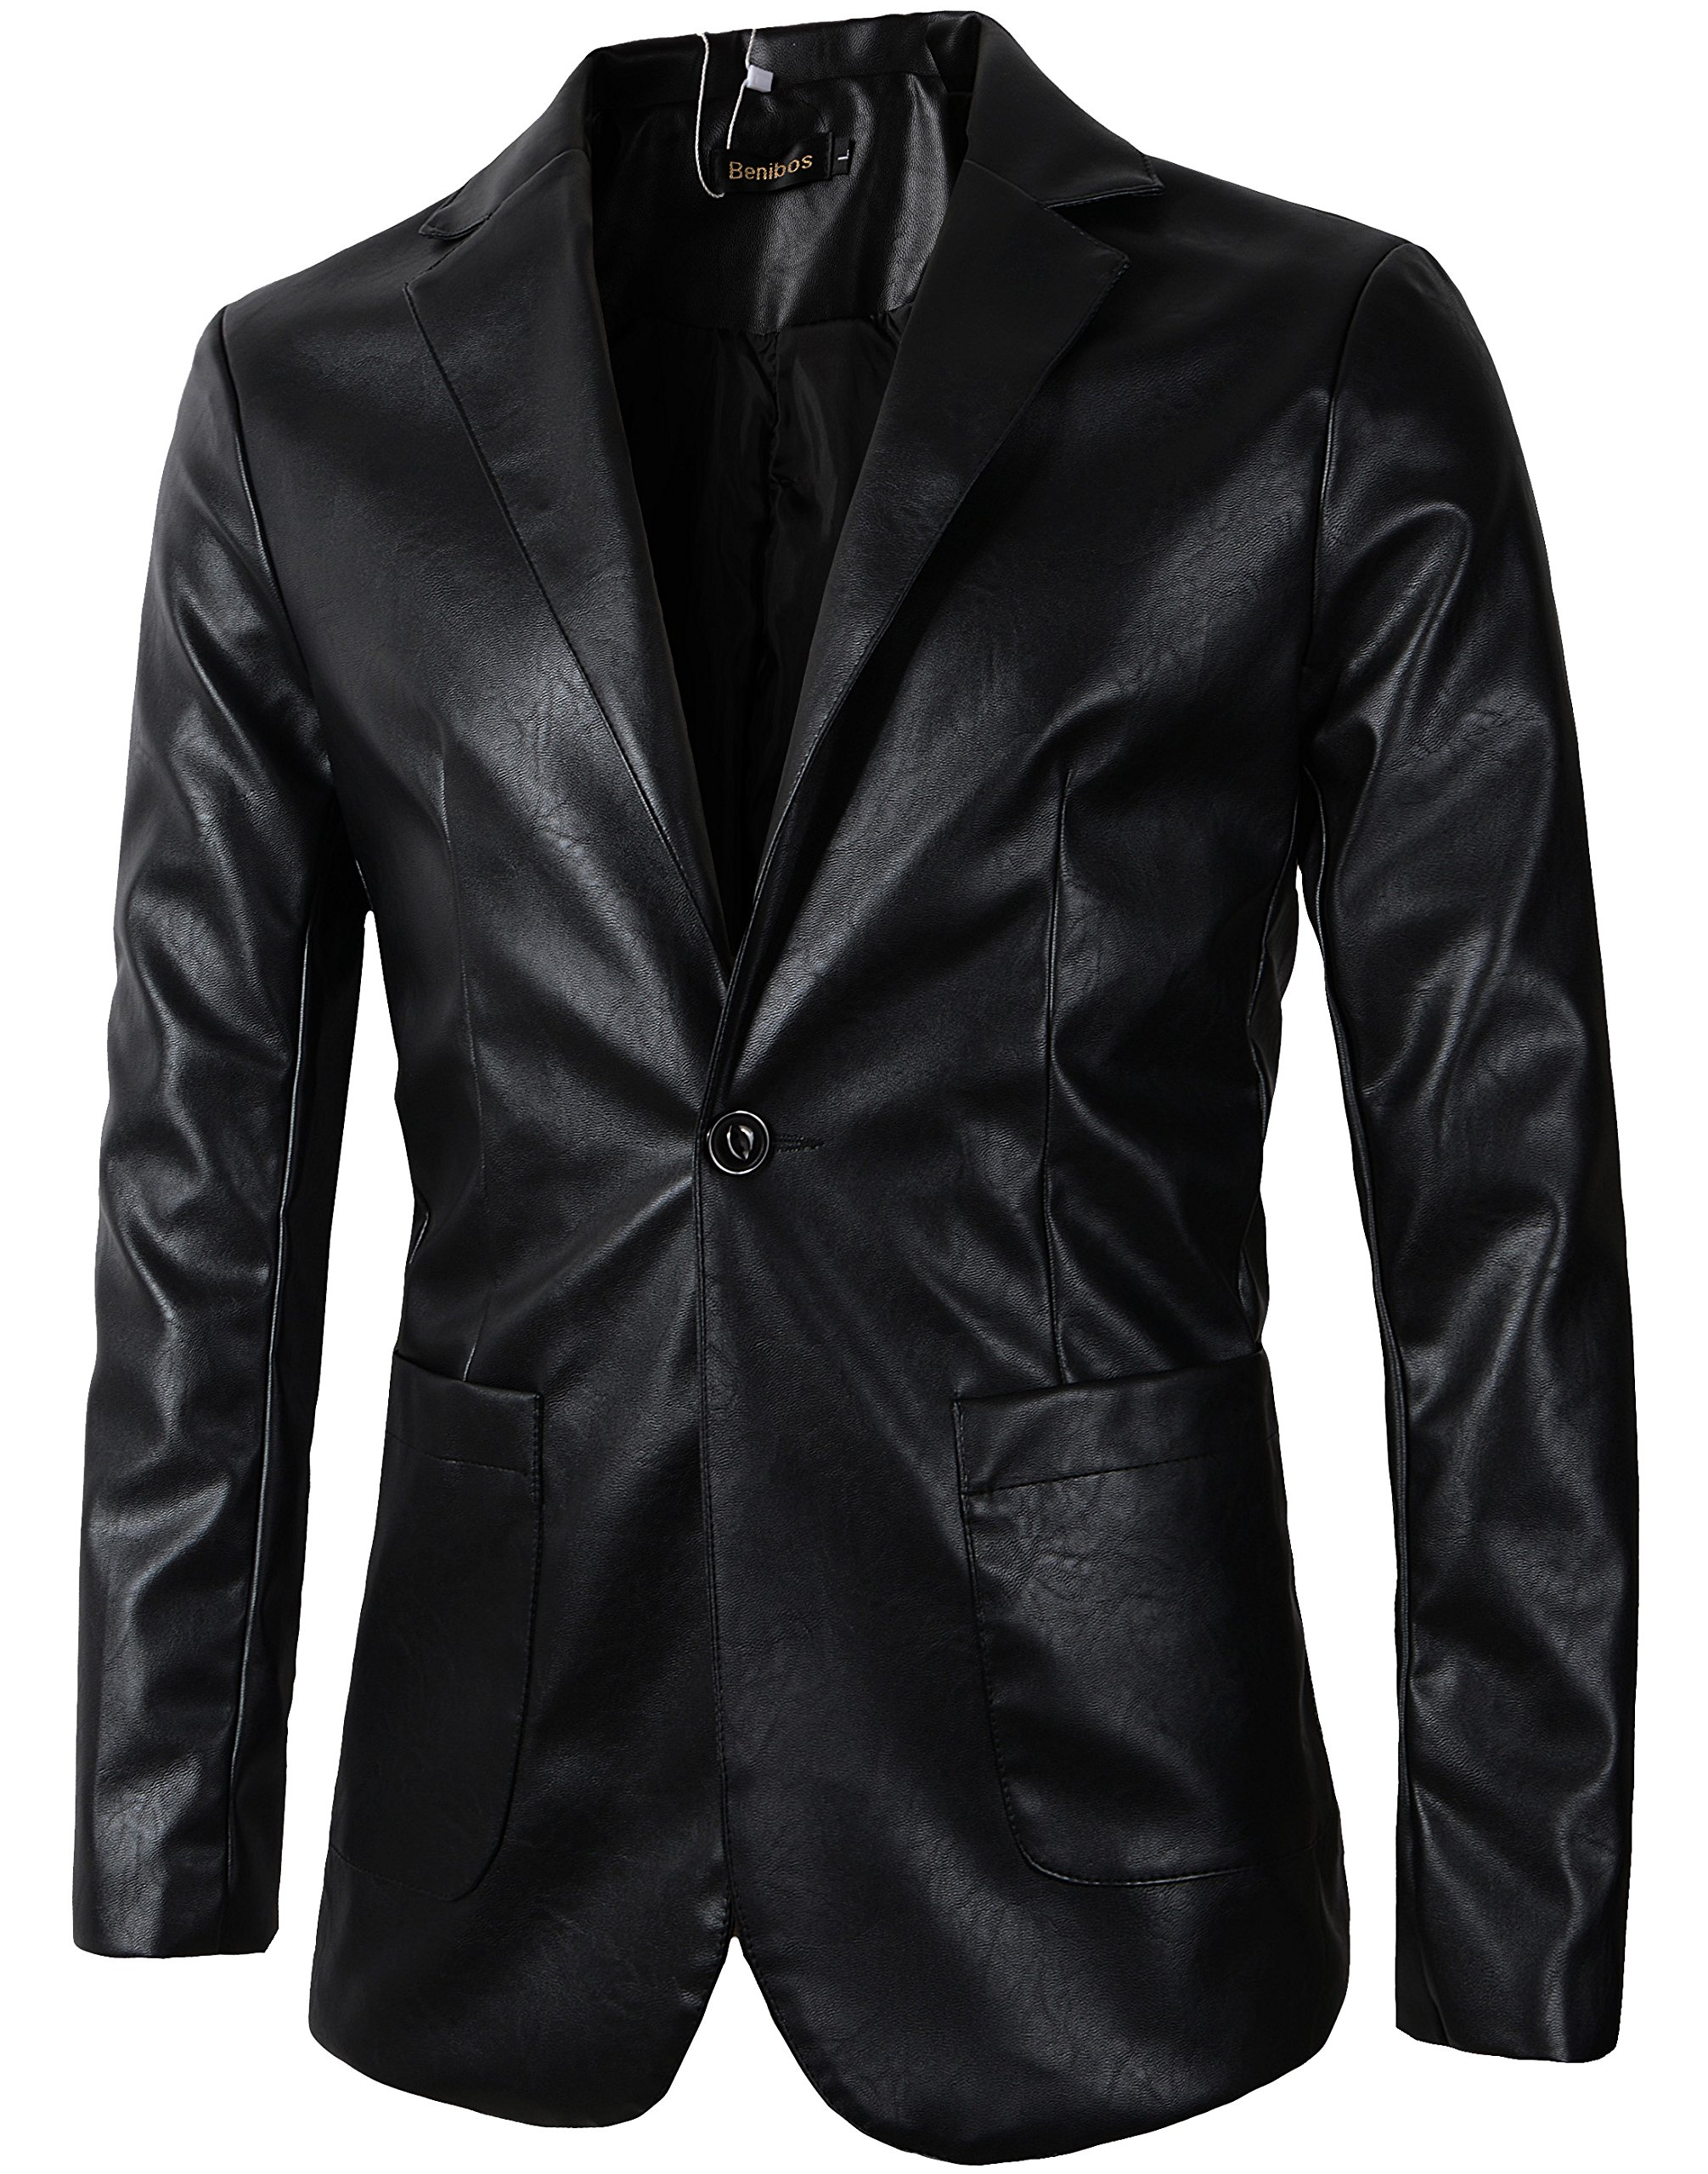 Benibos Men's Casual Pu Faux Leather One Button Blazer Suit Jacket (X22, M) by Benibos